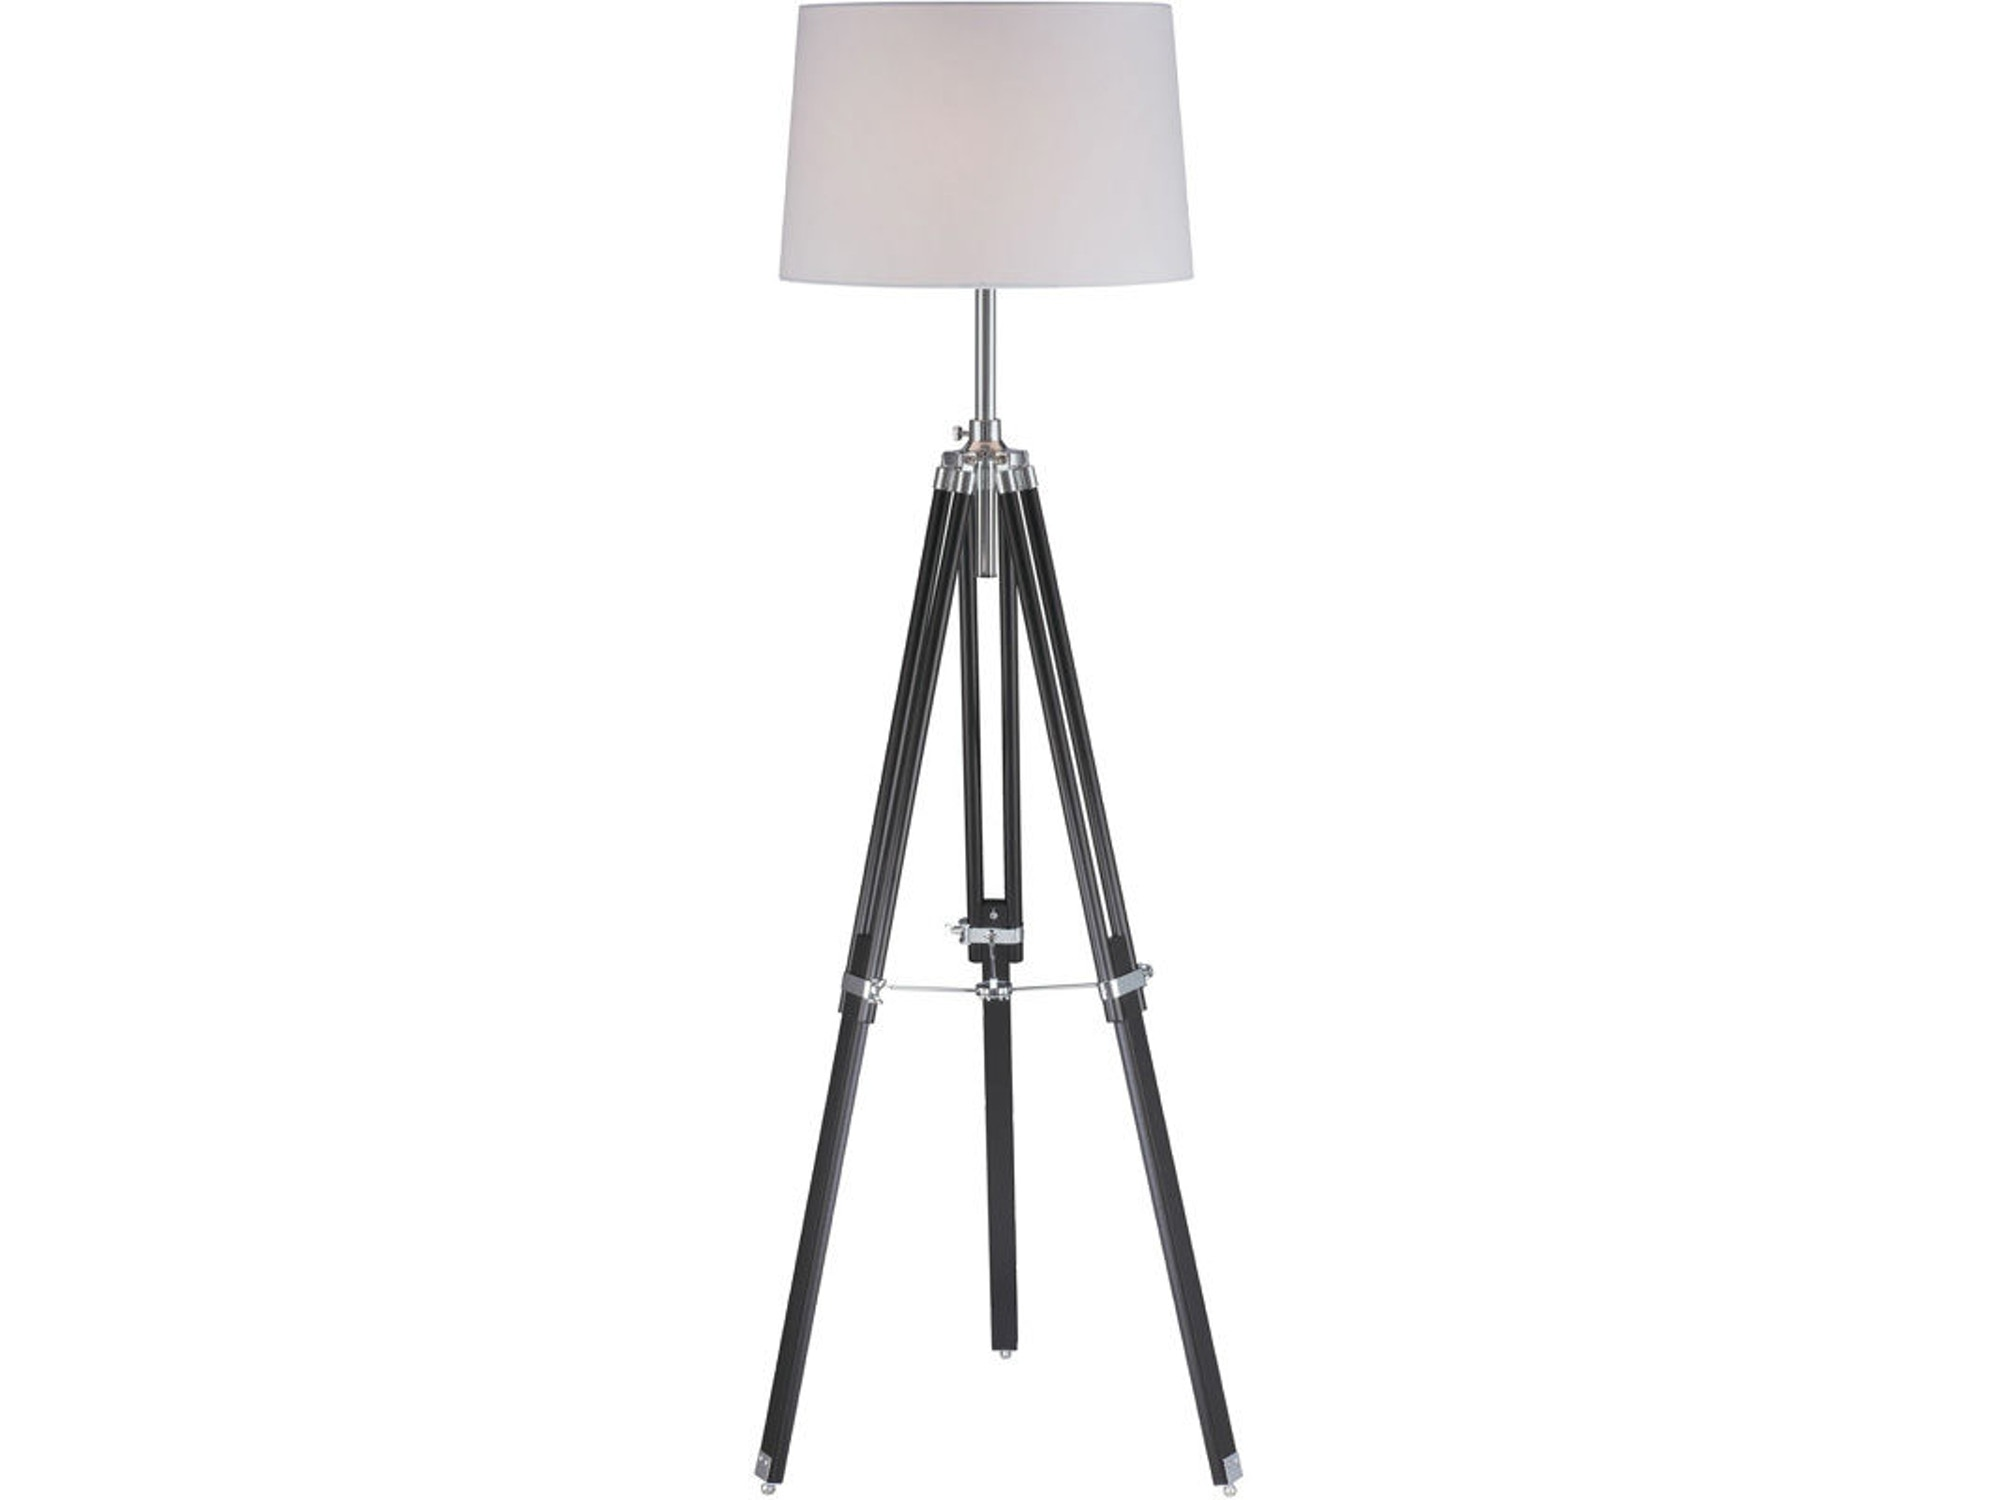 Surveyor Style 3 Leg Floor Lamp 036031